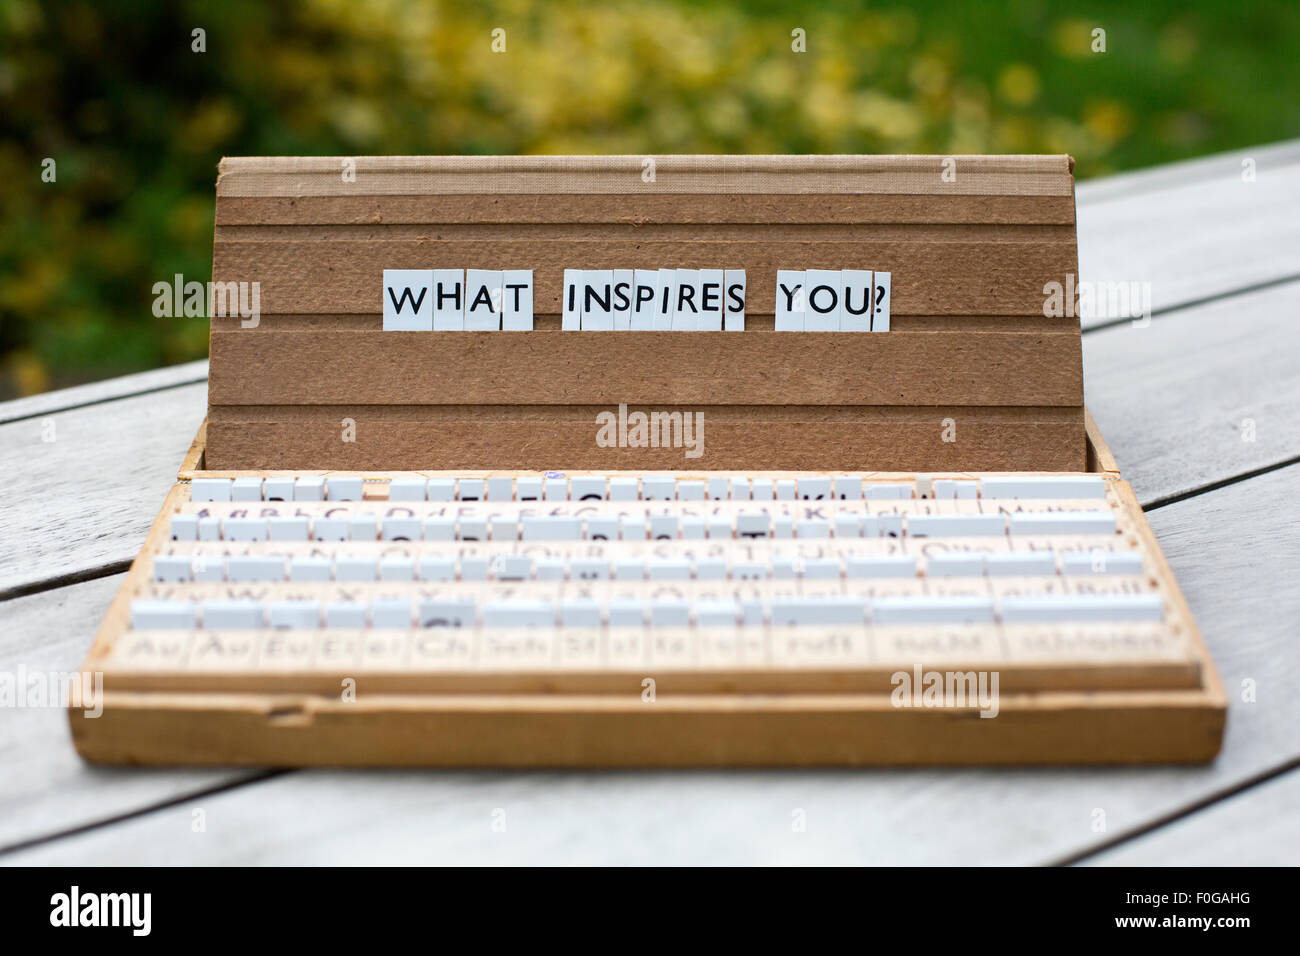 the words 'what inspires you?' on an old school letter box - Stock Image